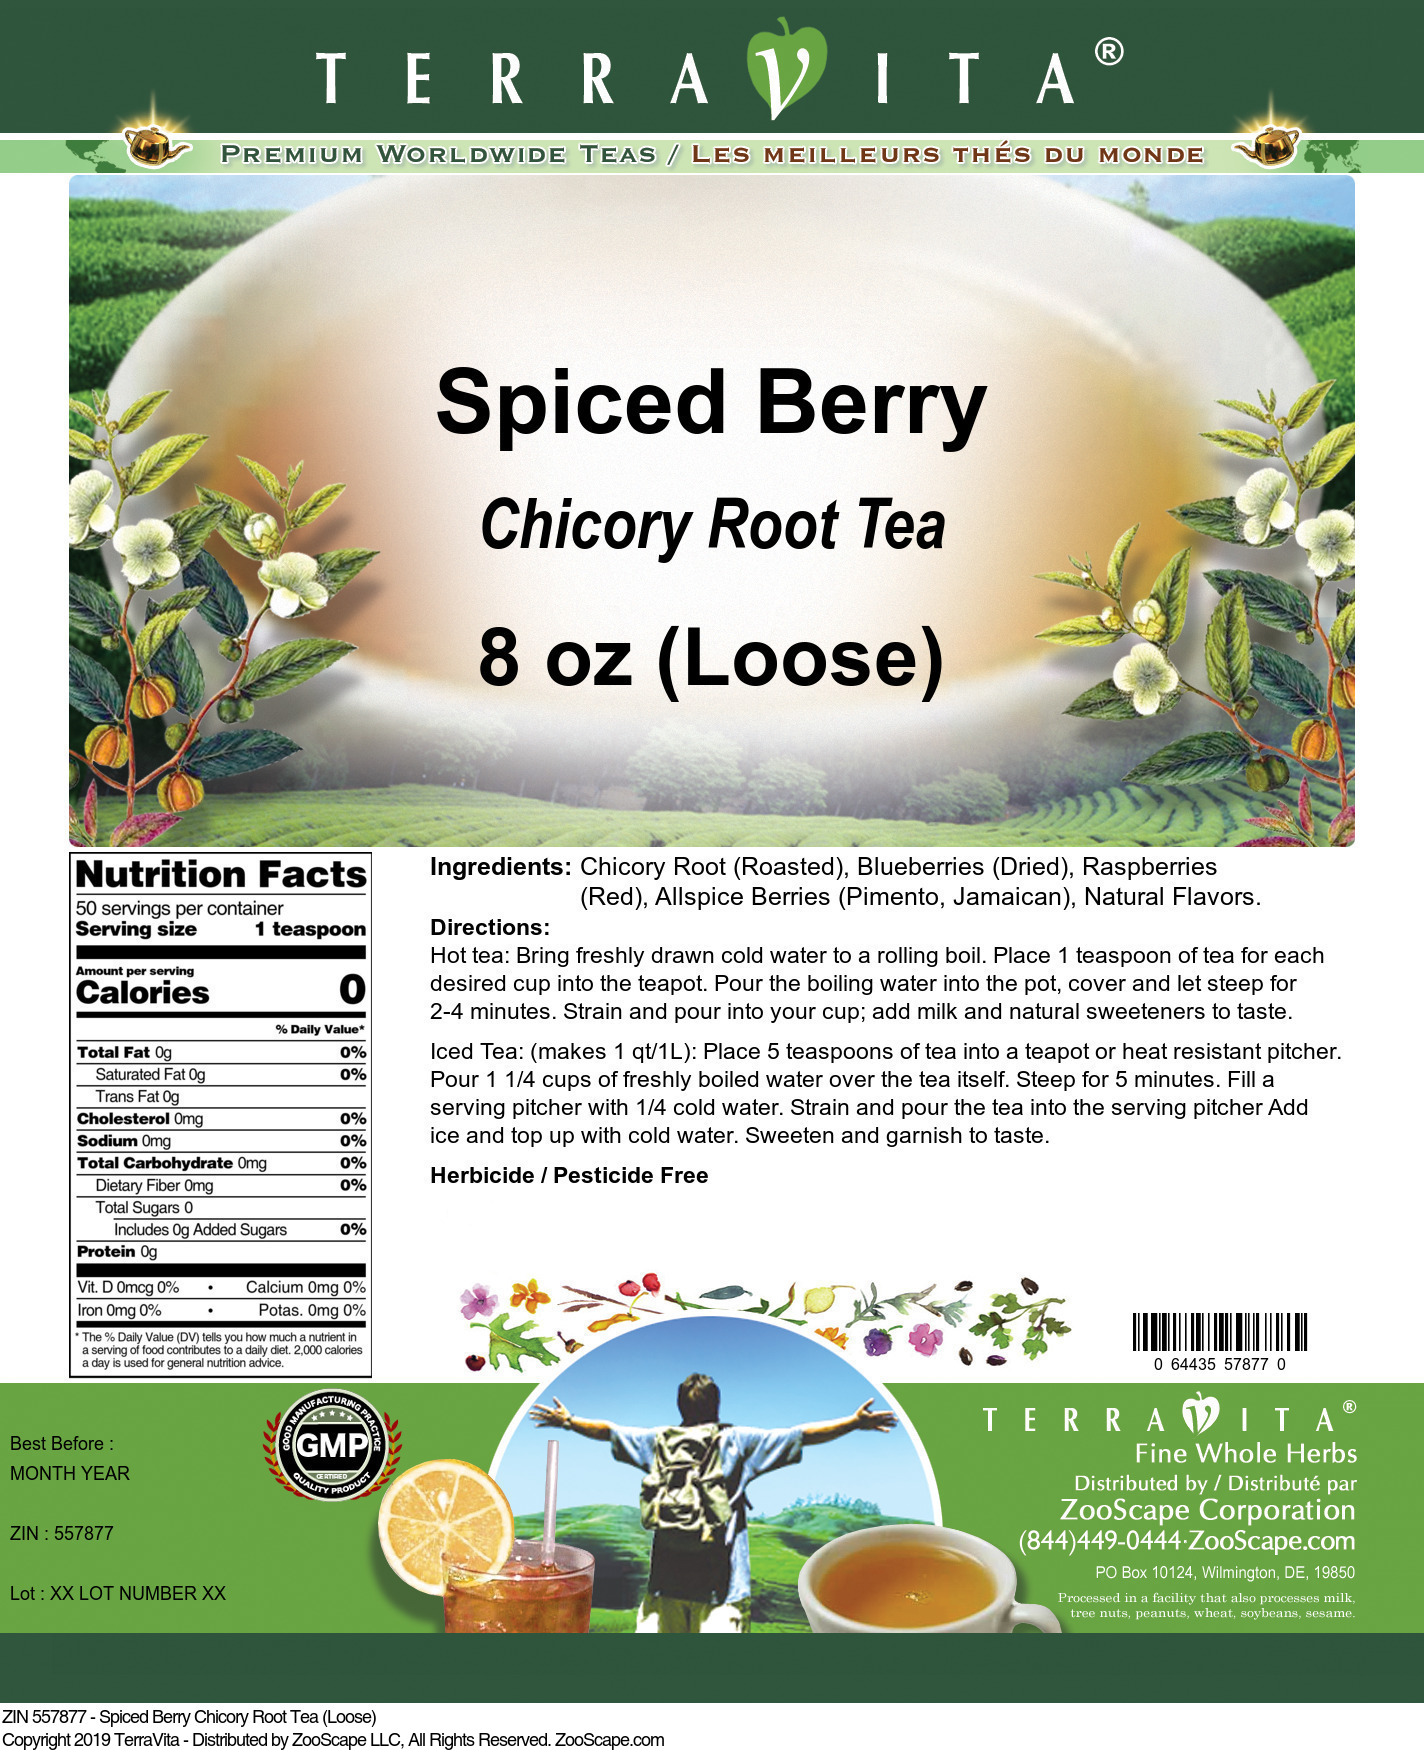 Spiced Berry Chicory Root Tea (Loose)